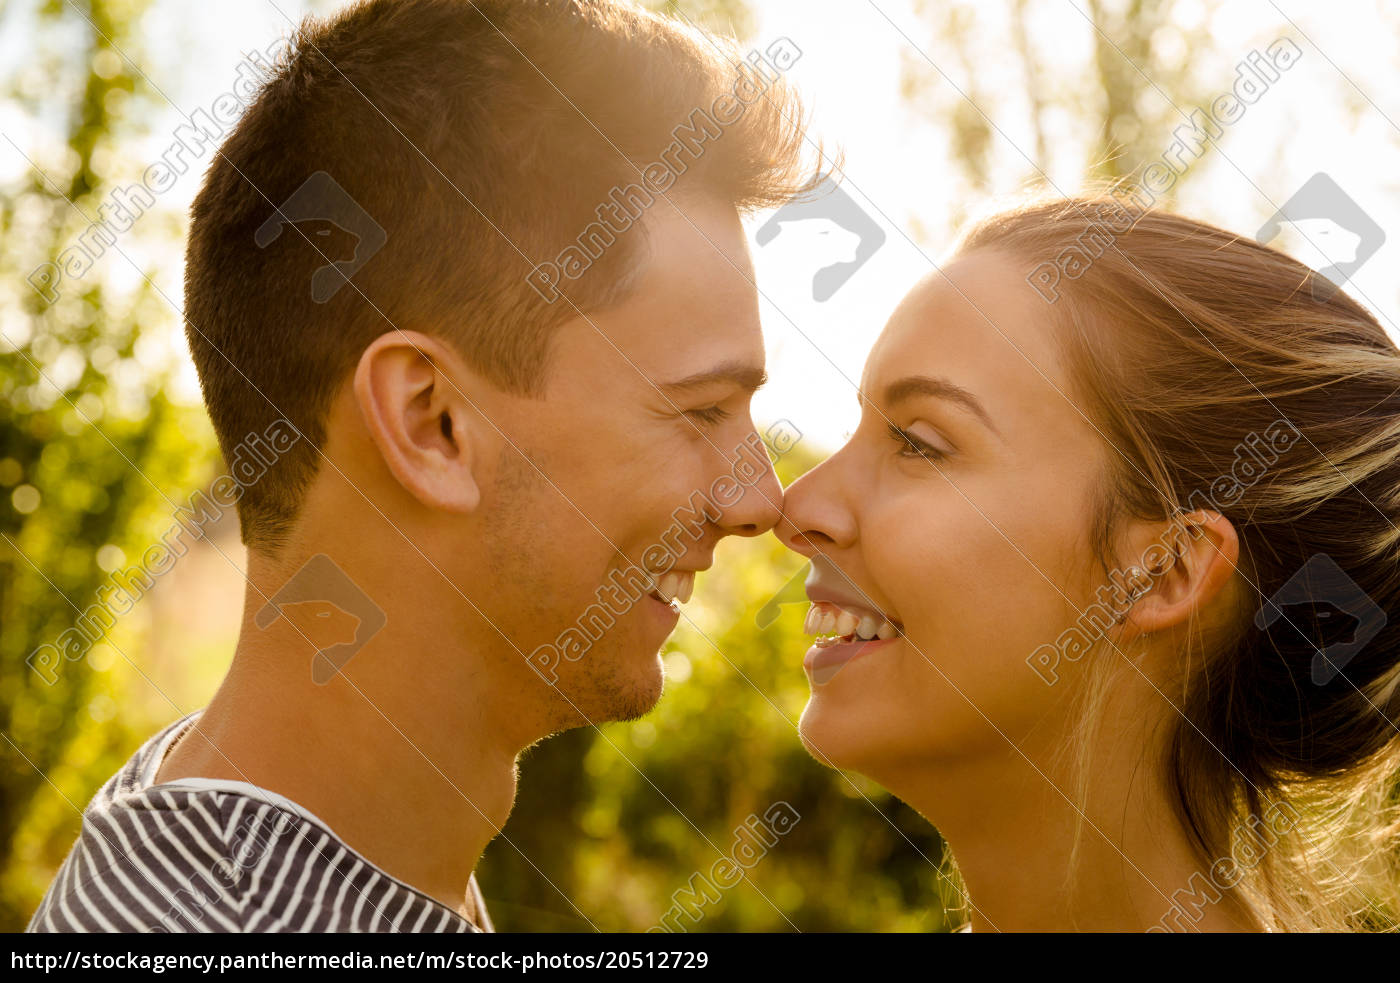 perfect, moment, for, a, kiss - 20512729